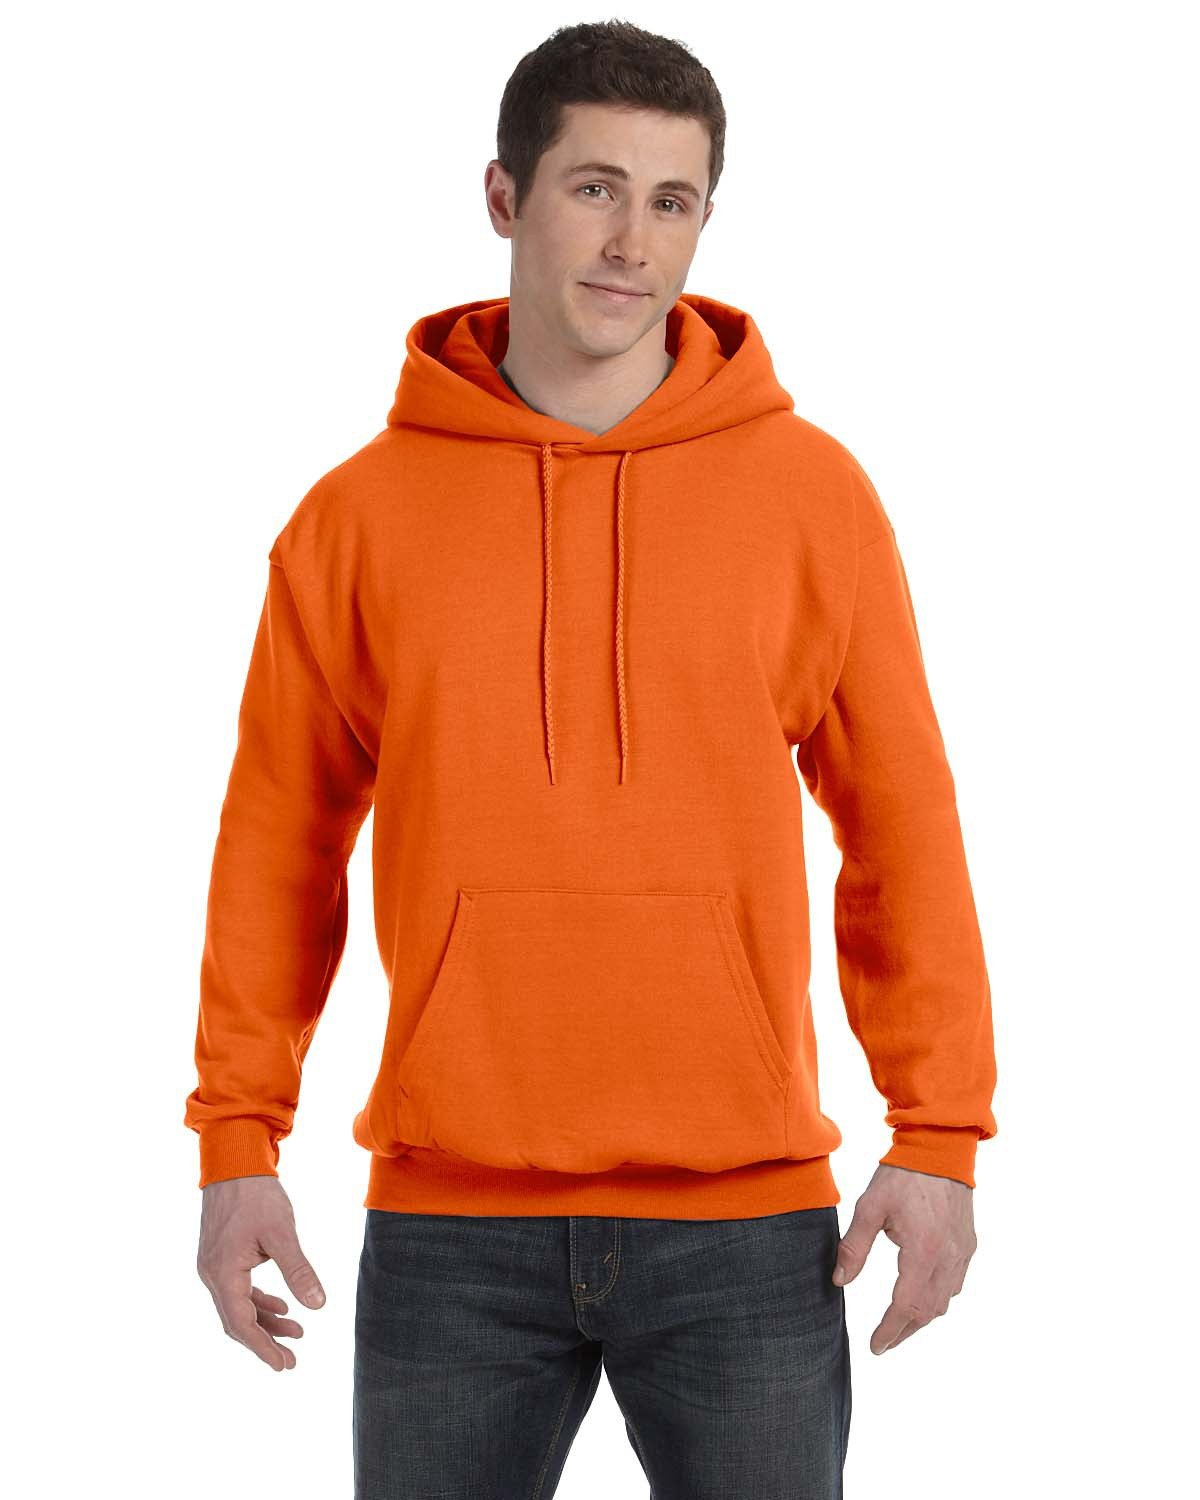 Hanes Unisex Ecosmart® 50/50 Pullover Hooded Sweatshirt ORANGE